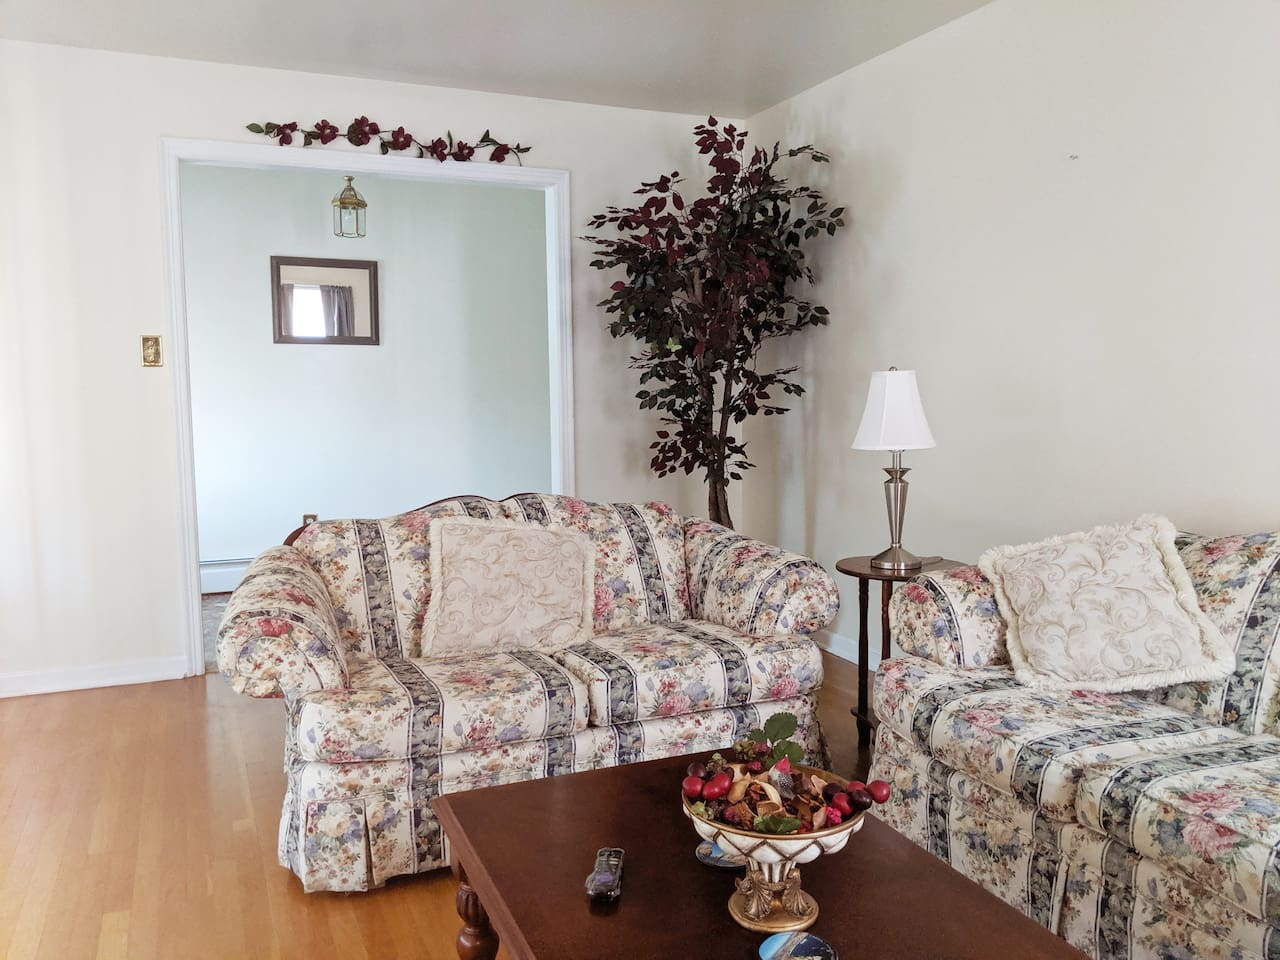 Living room * A cozy spot to gather and chill-out! Spacious living room with  beautiful hardwood flooring.  * Ficus tree with white lights, extra pillows and thows enhance your comfort. * Large beautiful bay window with vertical blinds.